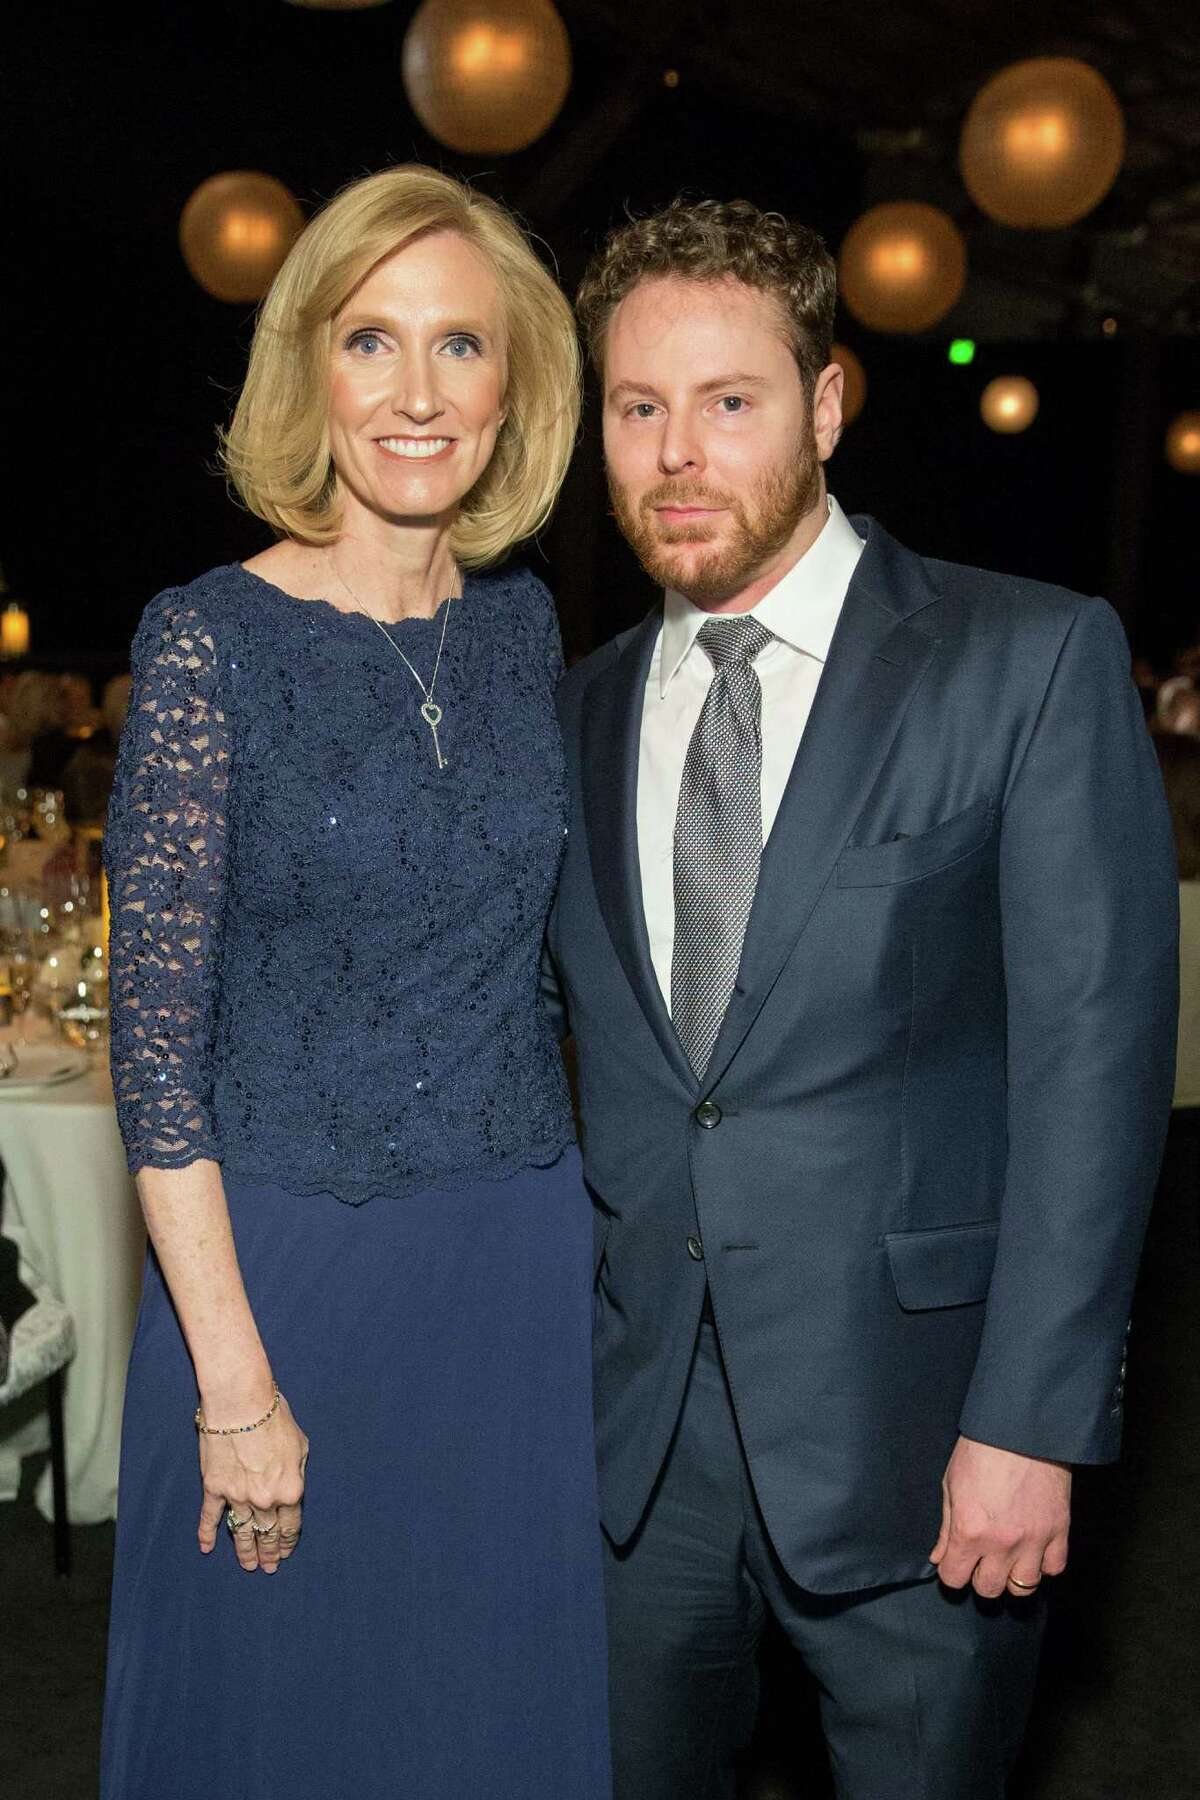 The CPMC 2020 Gala sponsored by CHANEL was held at Pier 35 on February 24. It raised $2.5 million for Sutter Health's CPMC and Clinical trials for food allergies at CPMC. Shown are Kari Nadeau with Sean Parker, the honorary chair.